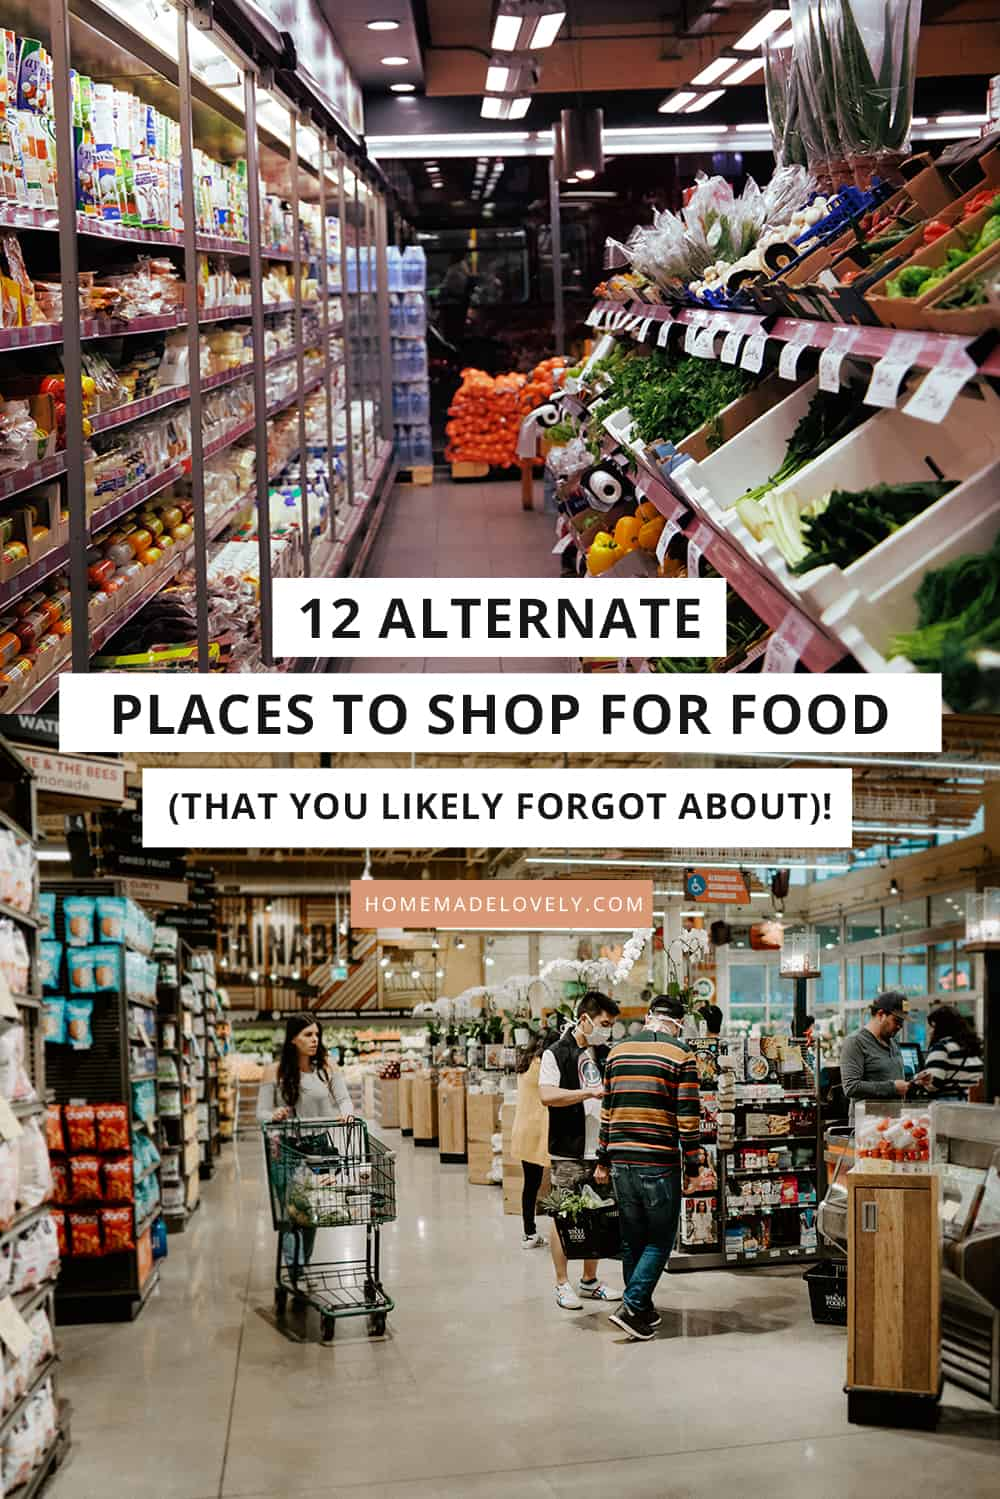 food stores with text overlay that says 11 alternate places to shop for food that you likely forgot about